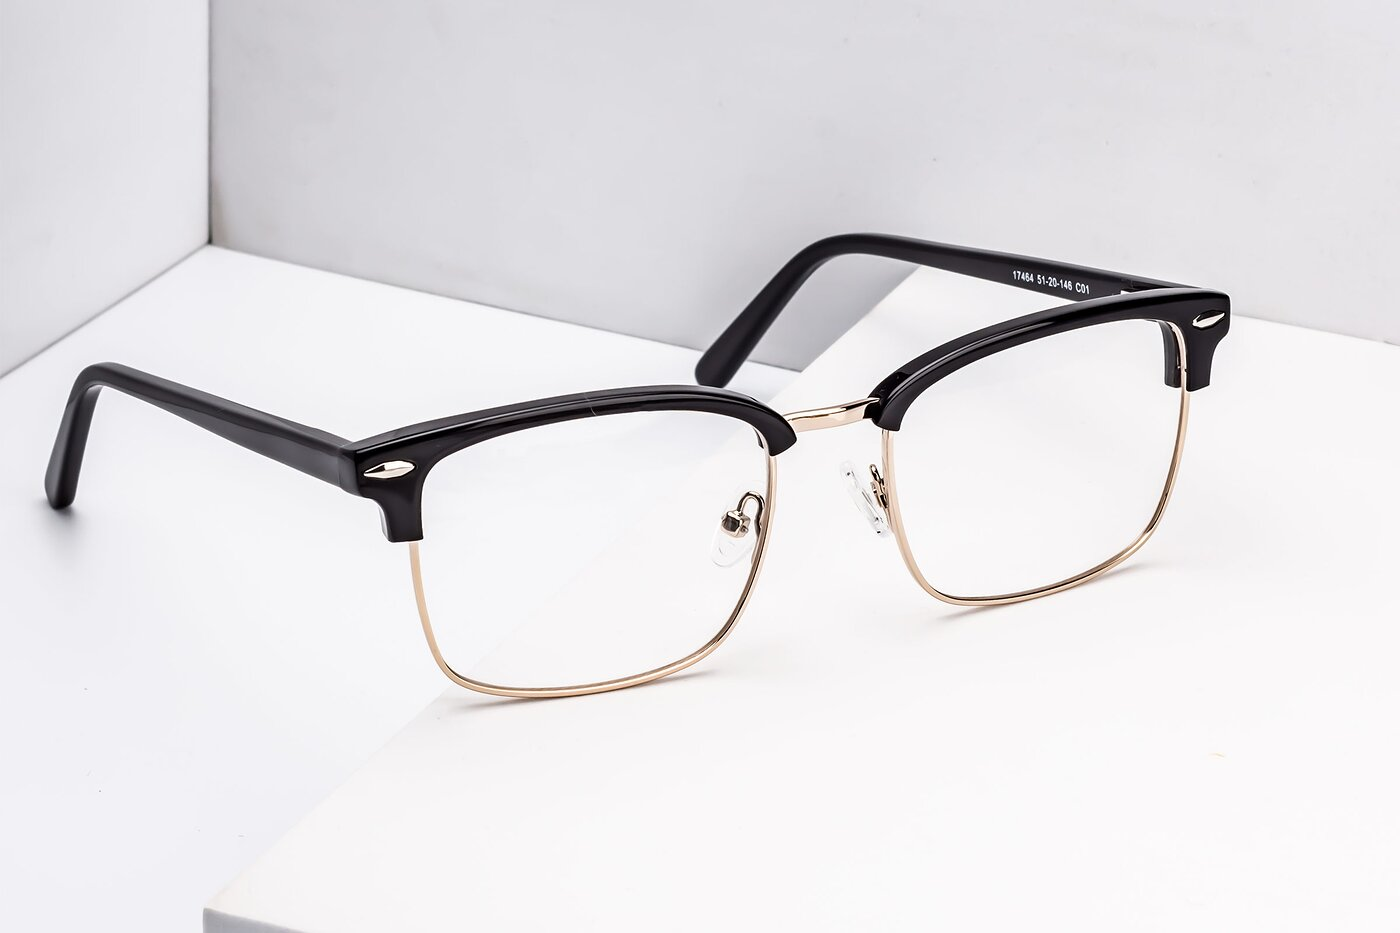 Black-Gold Browline Retro-Vintage Square Eyeglasses